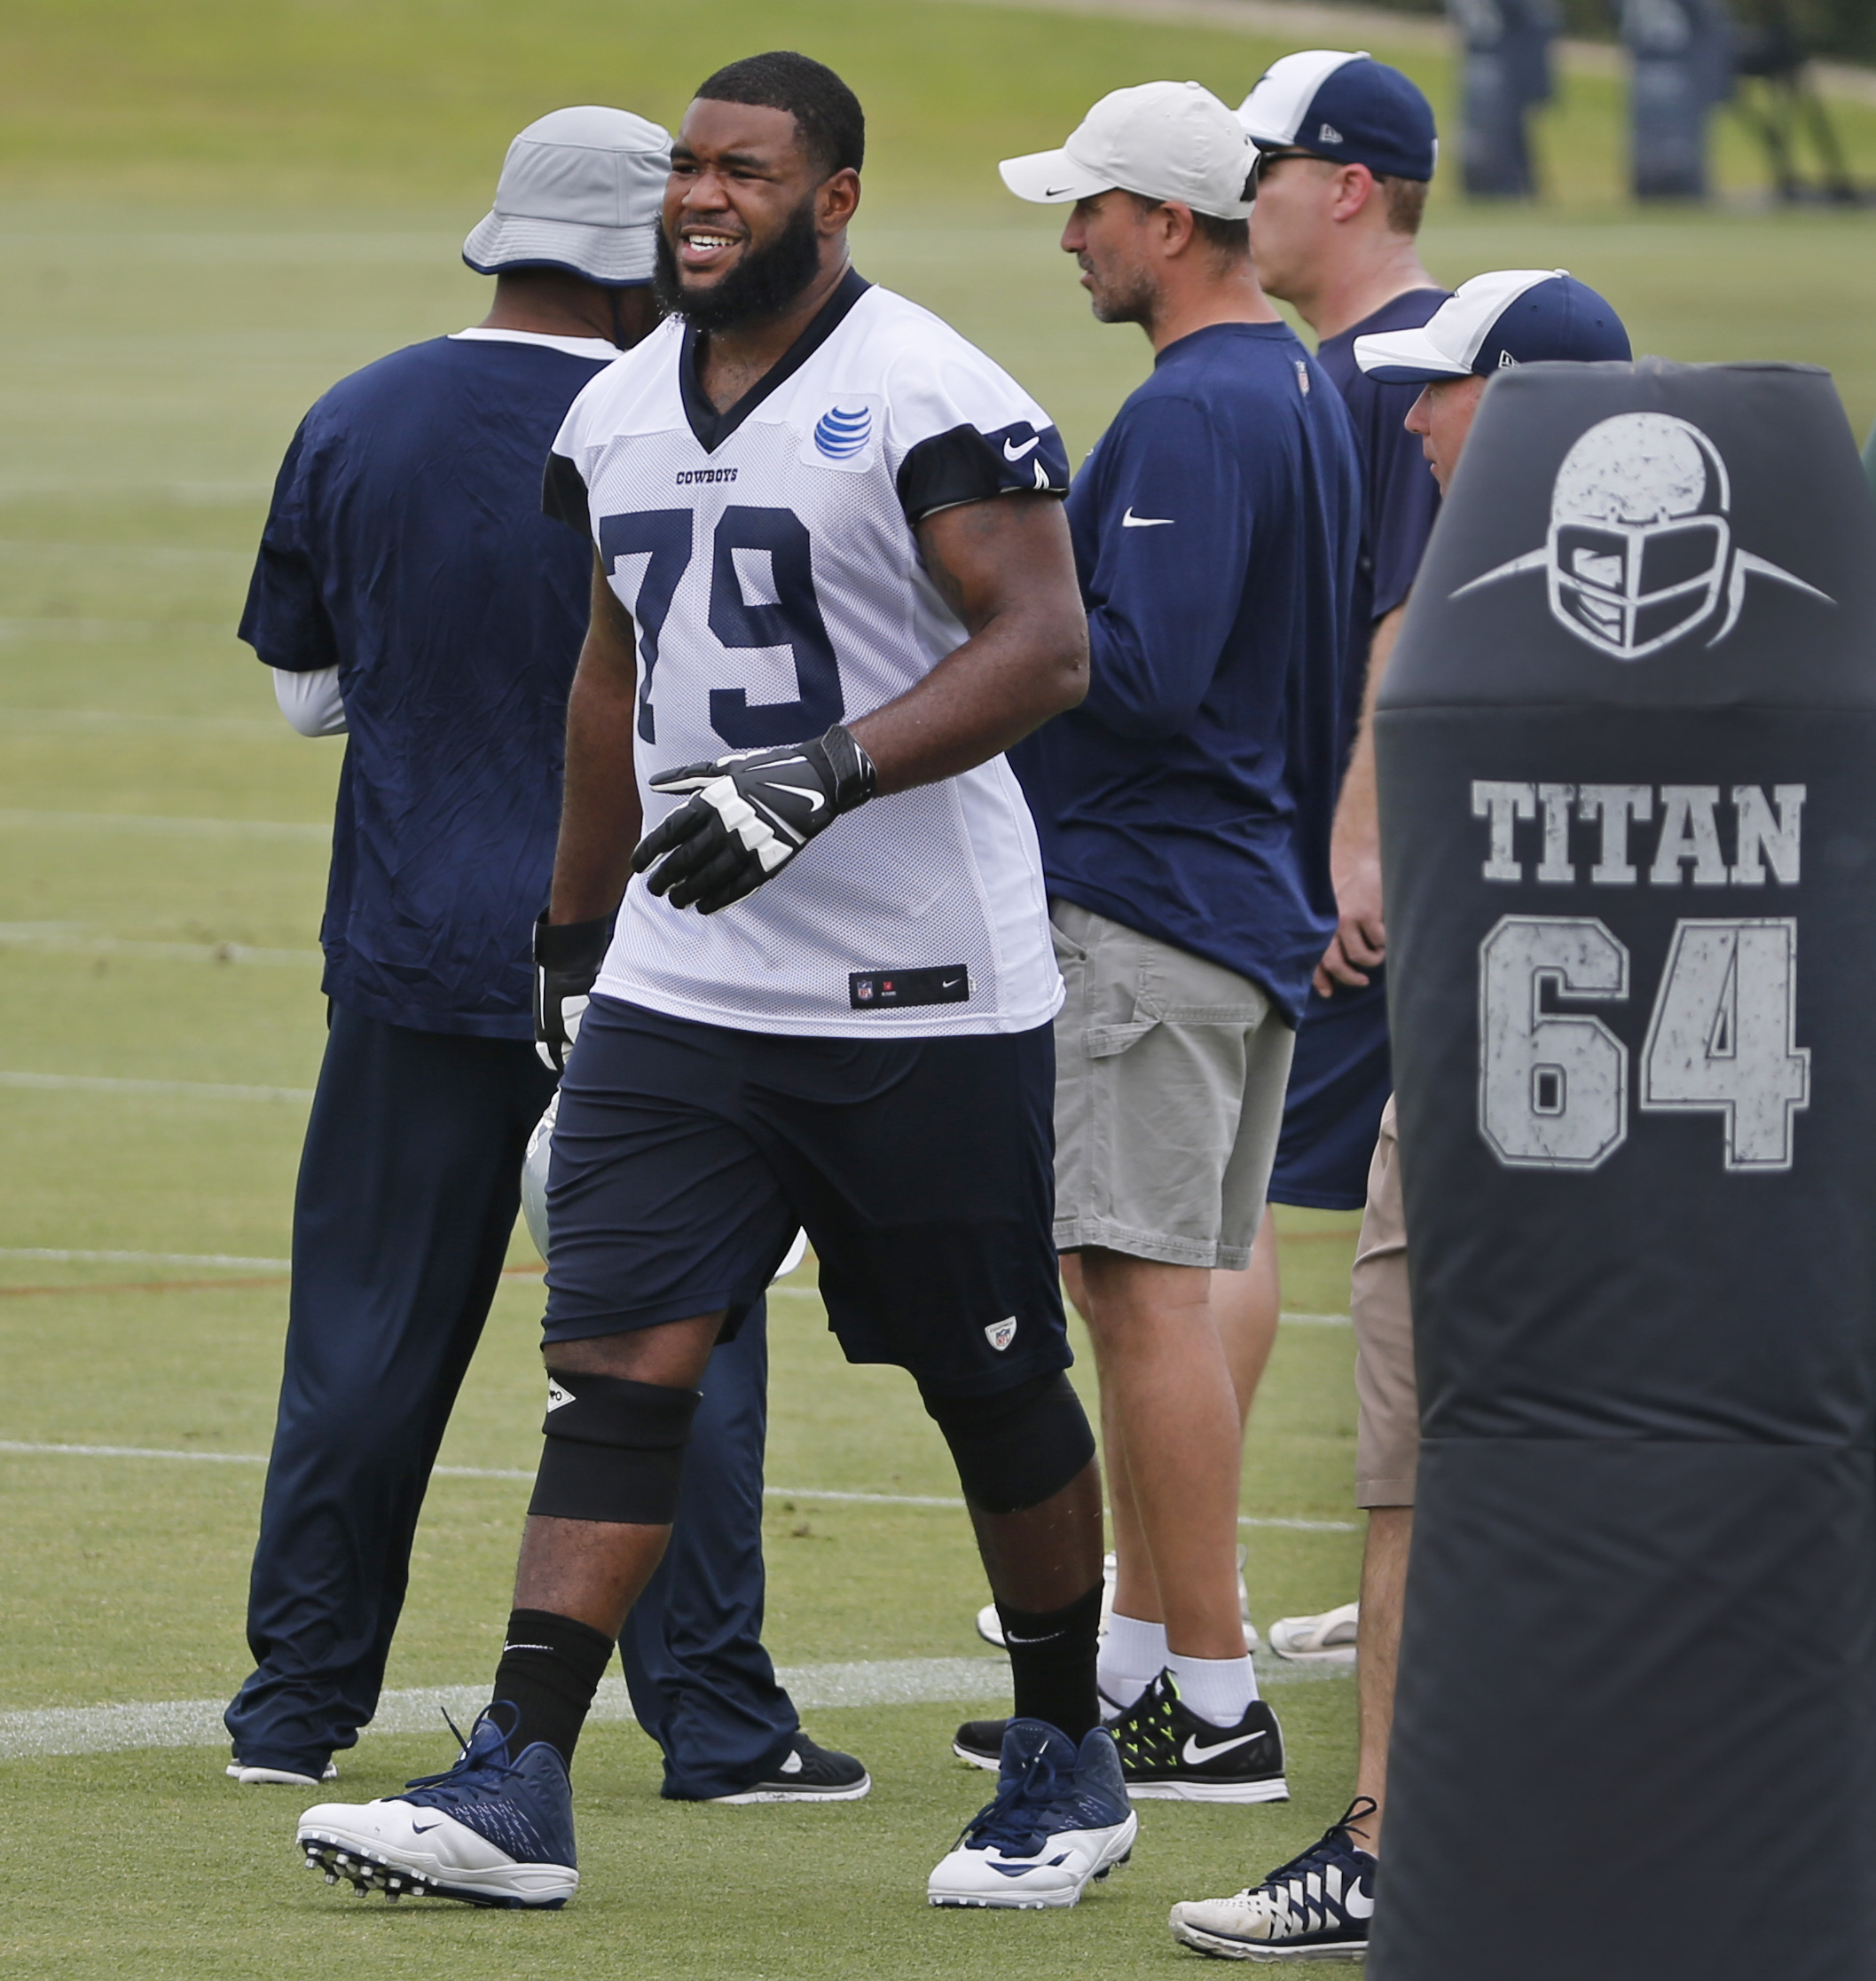 Cowboys Headlines - Where Does Chaz Green Fit in Offensive Line?